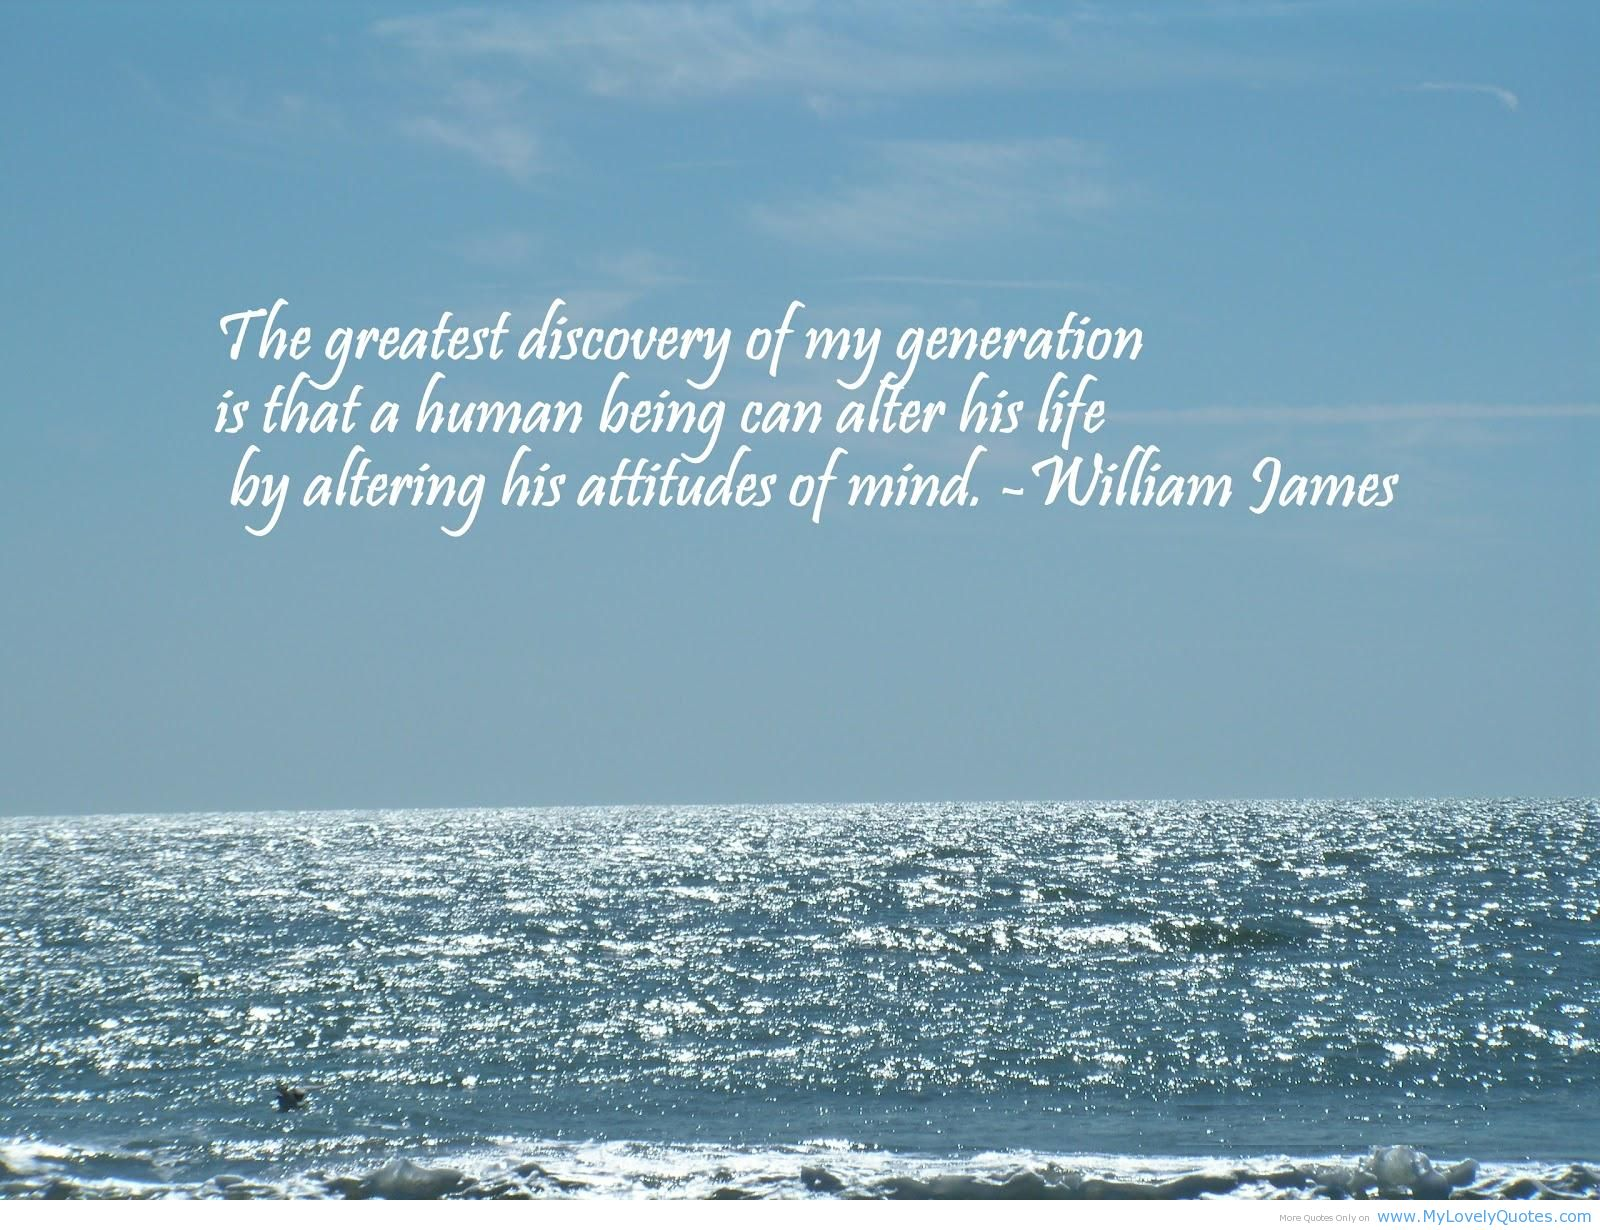 Quotes About Discovery And Exploration Quotesgram: Discovery Quotes And Sayings. QuotesGram